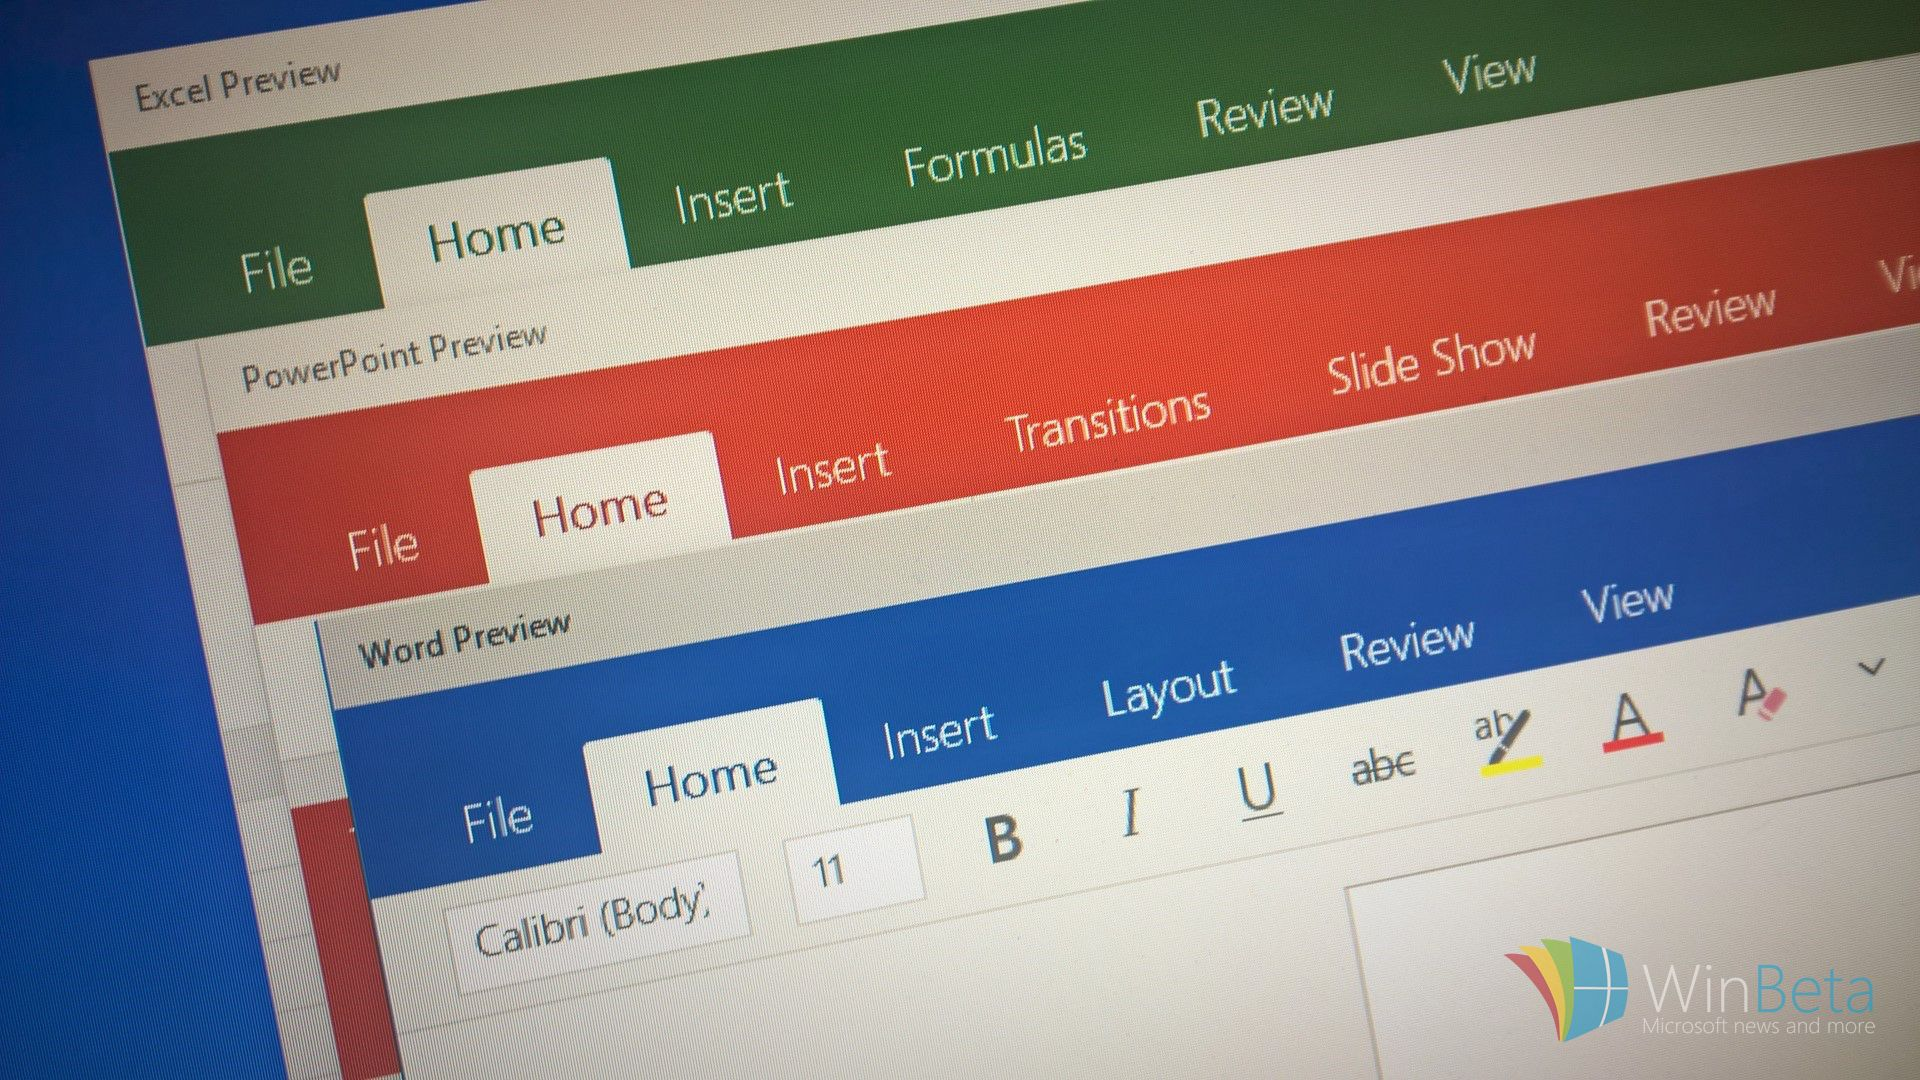 First look at Office 2016 Touch for Windows 10 — Word, Excel, and